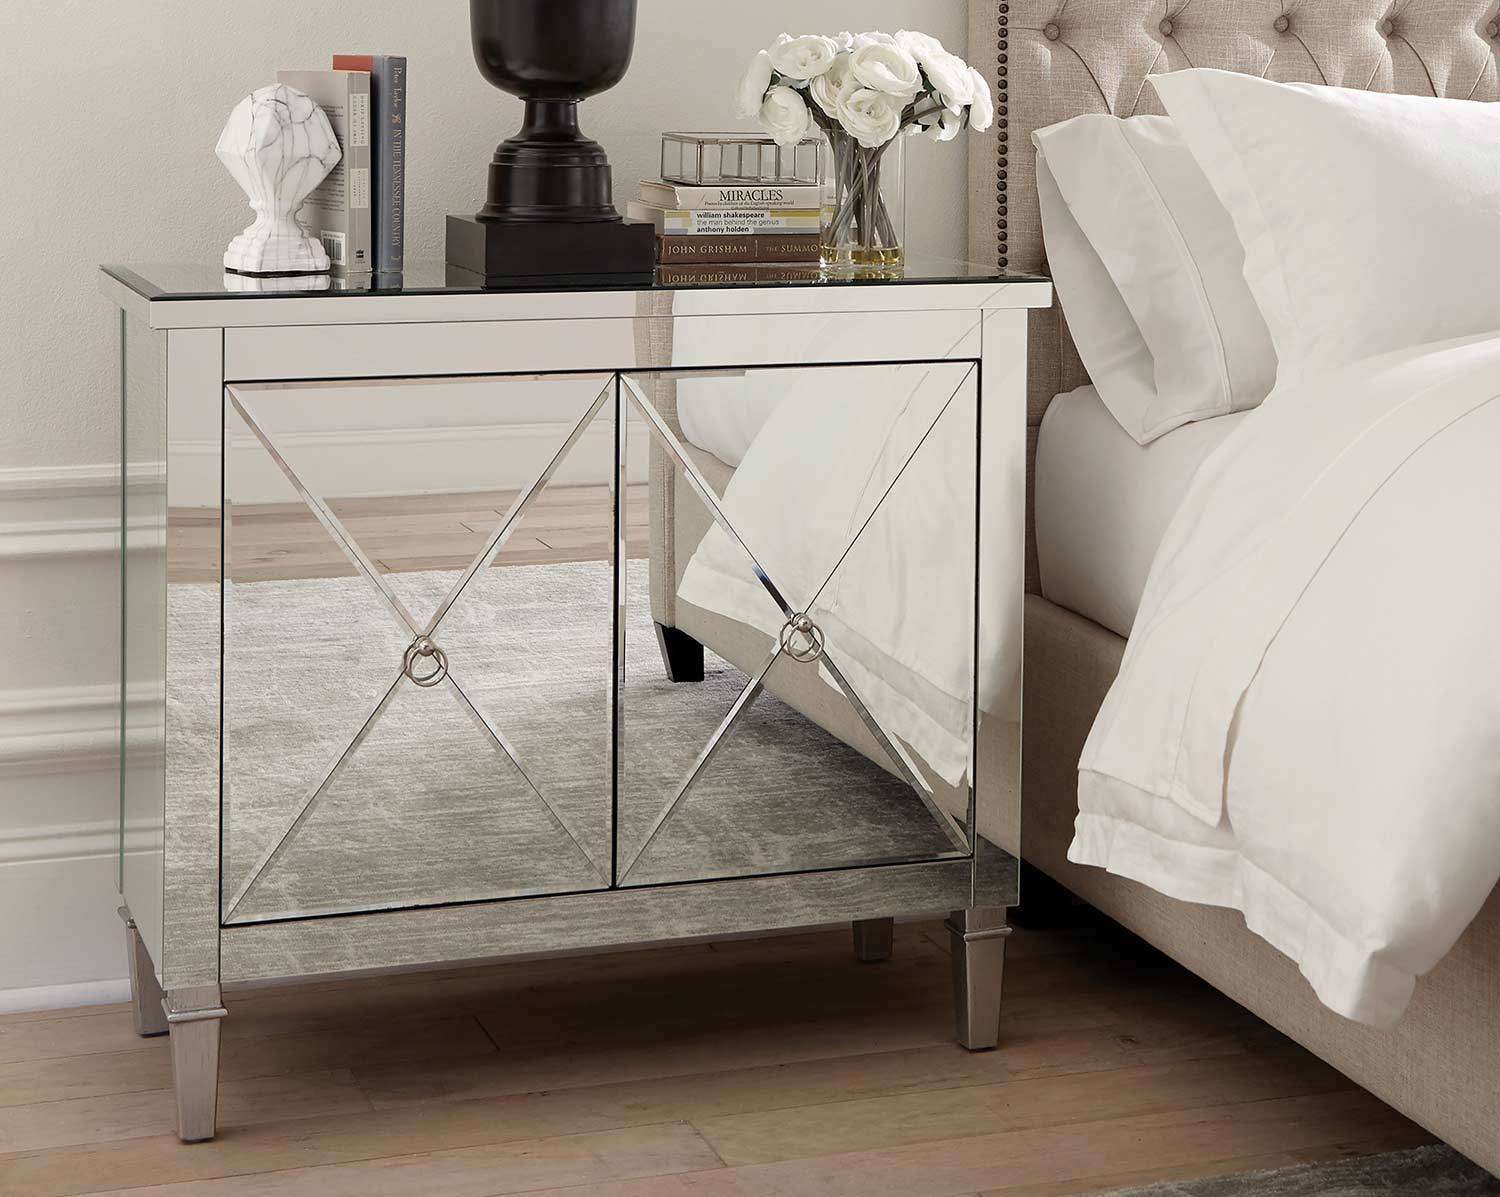 Coaster 950742 Accent Cabinet - Clear Mirror/Nickel